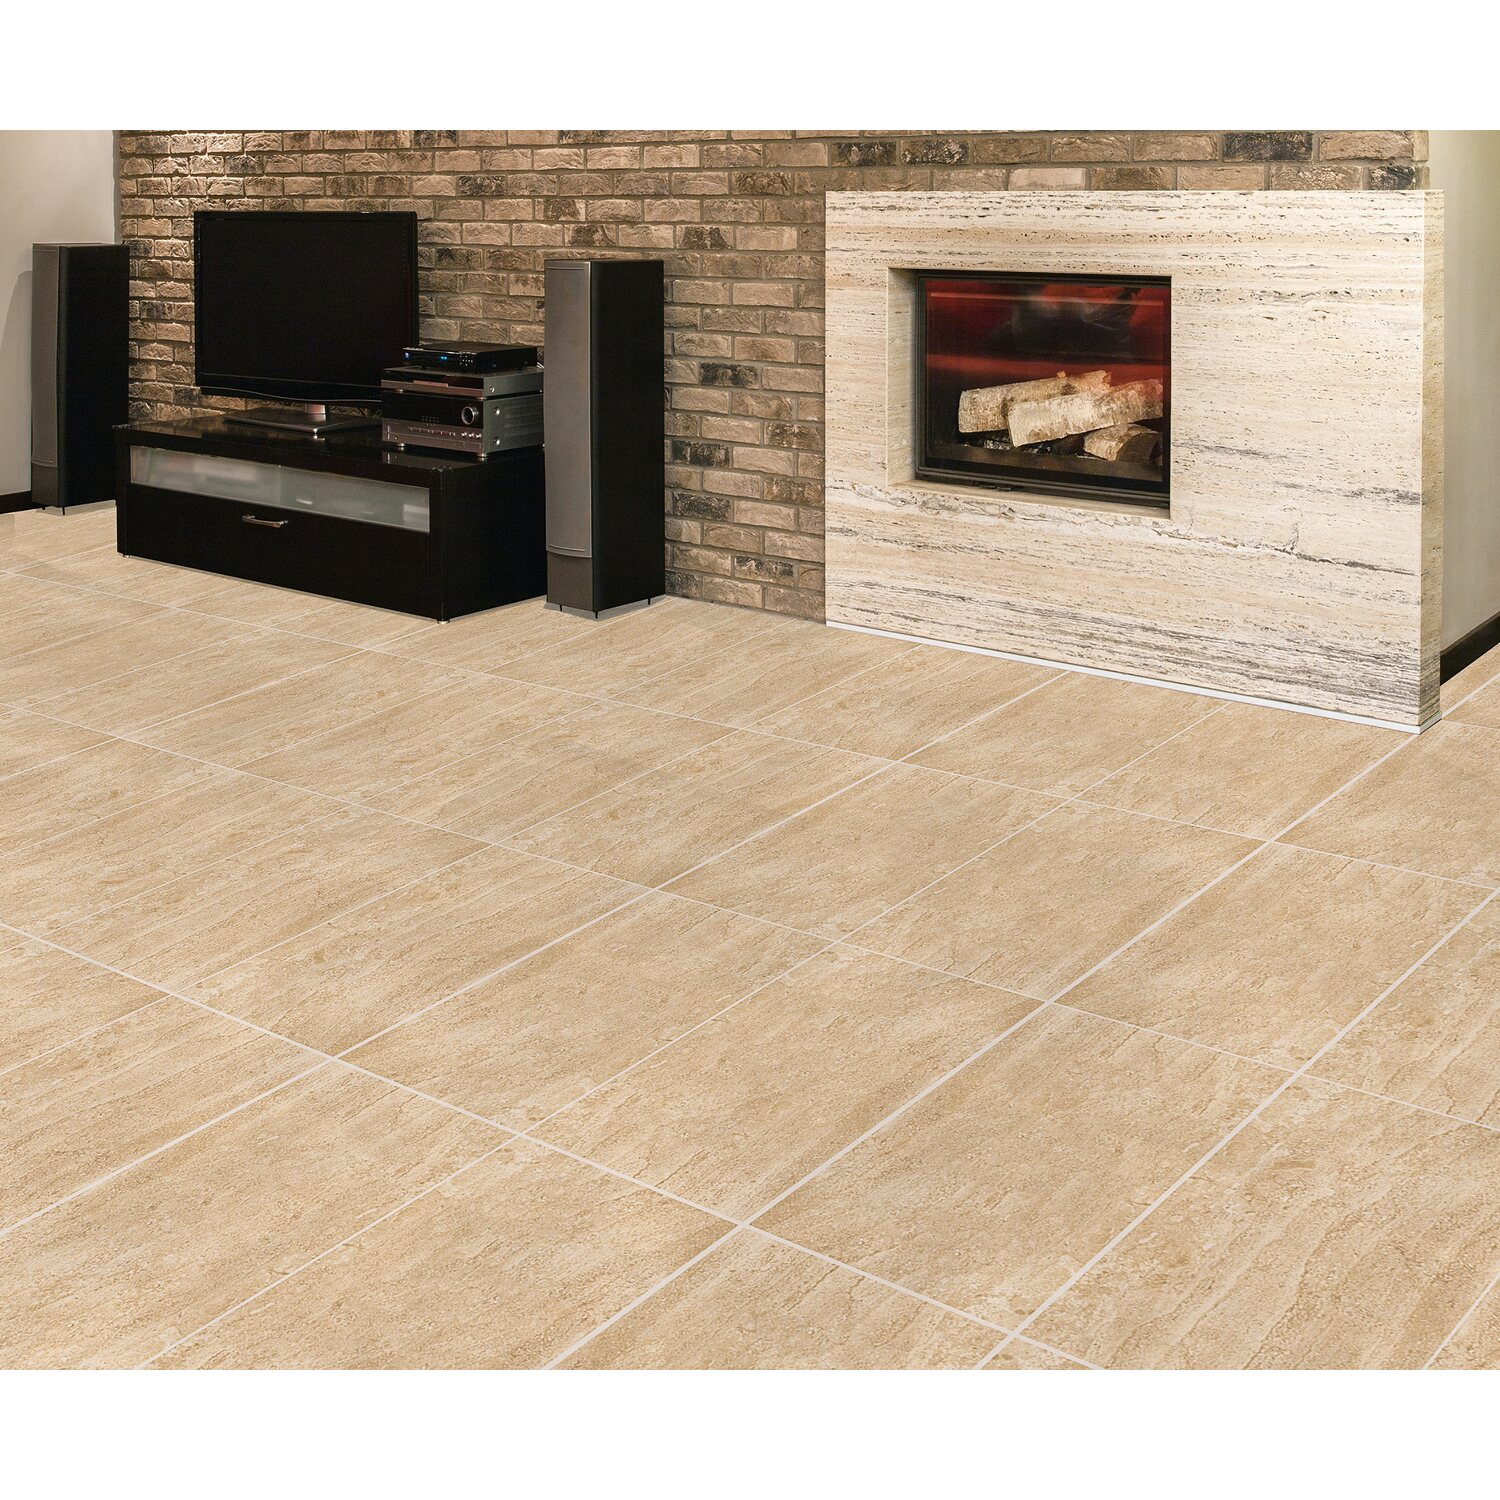 Pavimento gres porcellanato travertino beige 30,2 cm x 60,4 cm ...